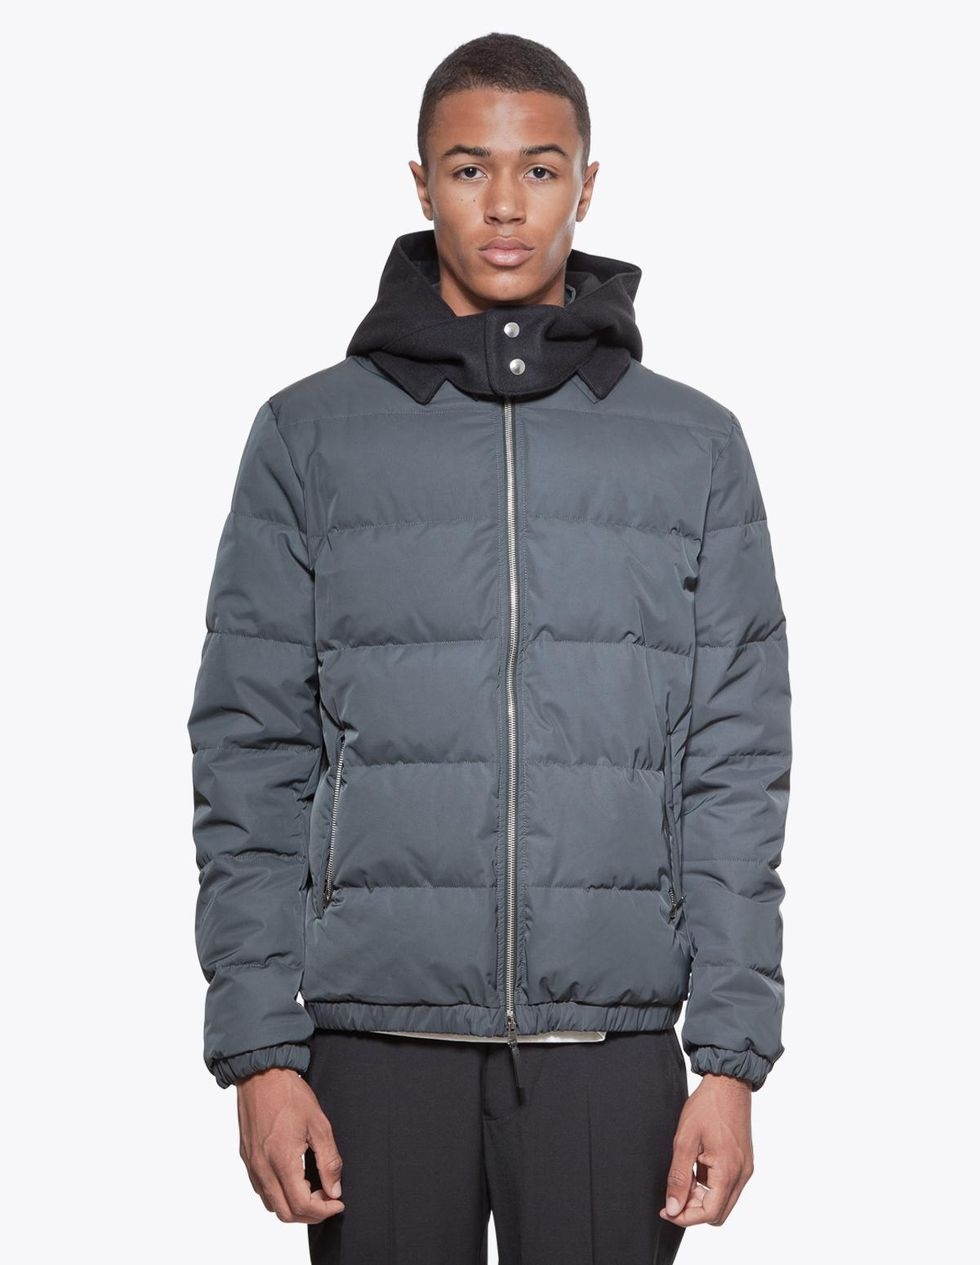 marni-down-jacket-grey01.jpg